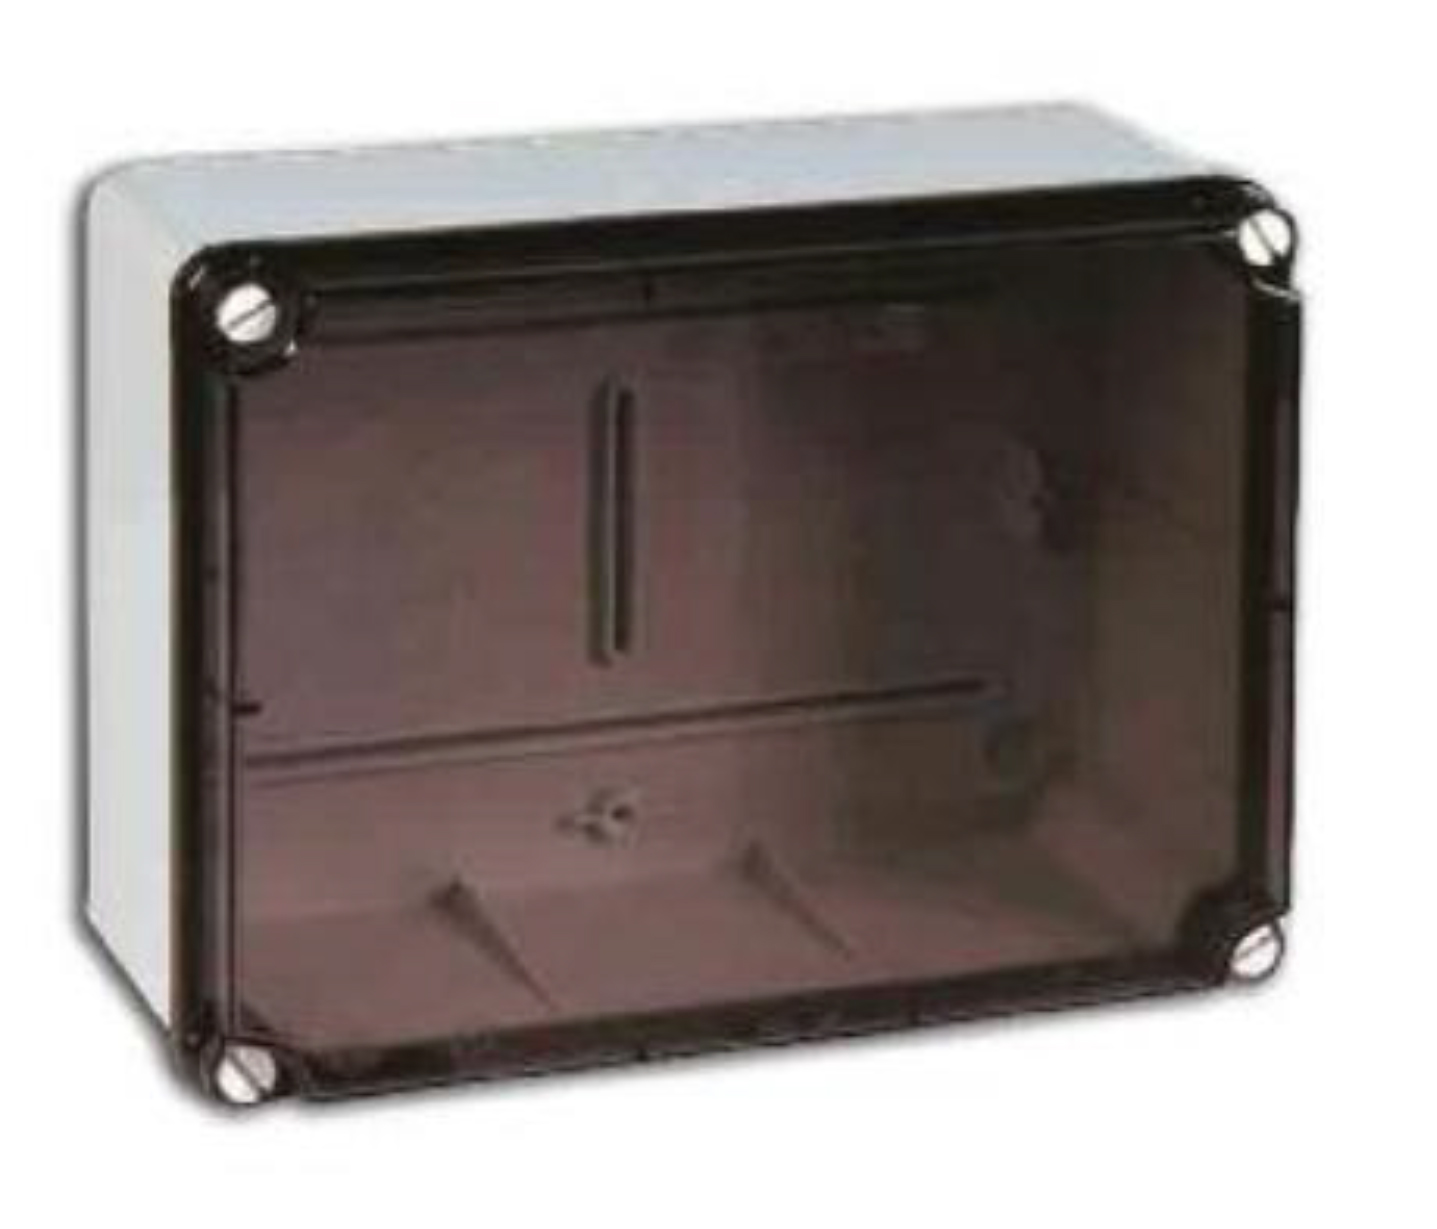 Hellerman AS35T Junction Box 190x140x70